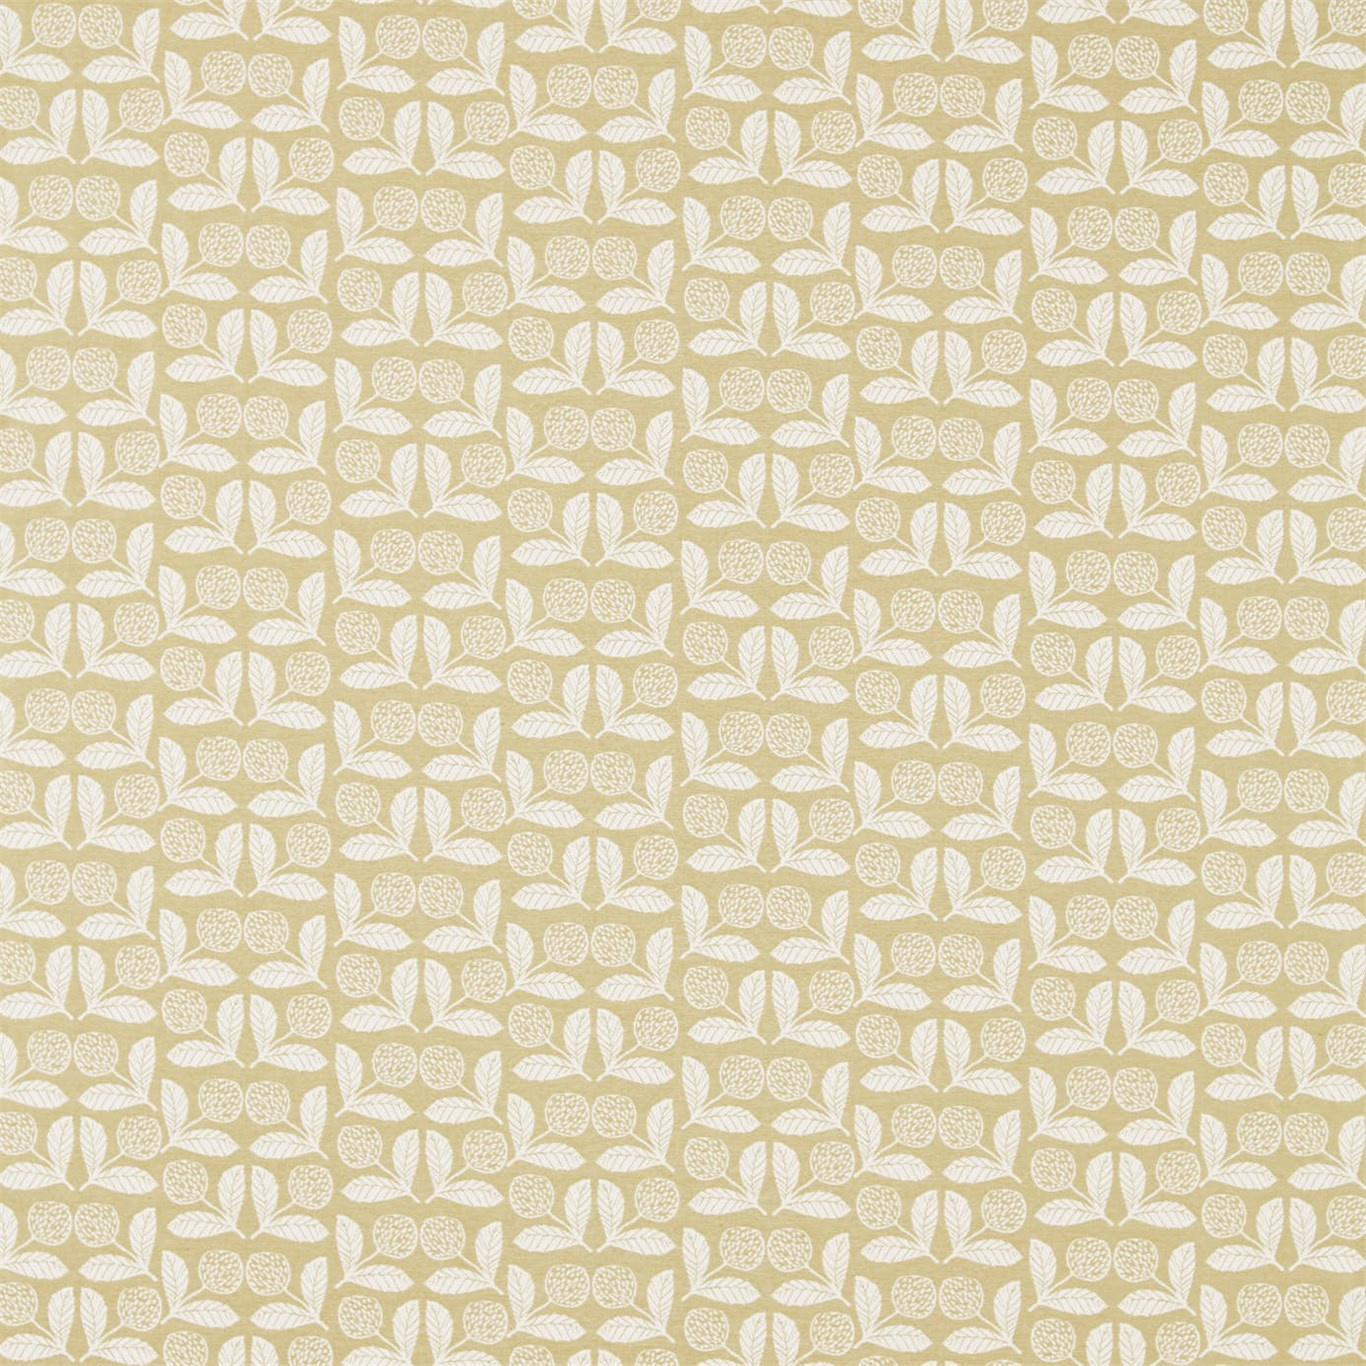 Image of Sanderson Home Seed Stitch Apple Curtain Fabric 235872